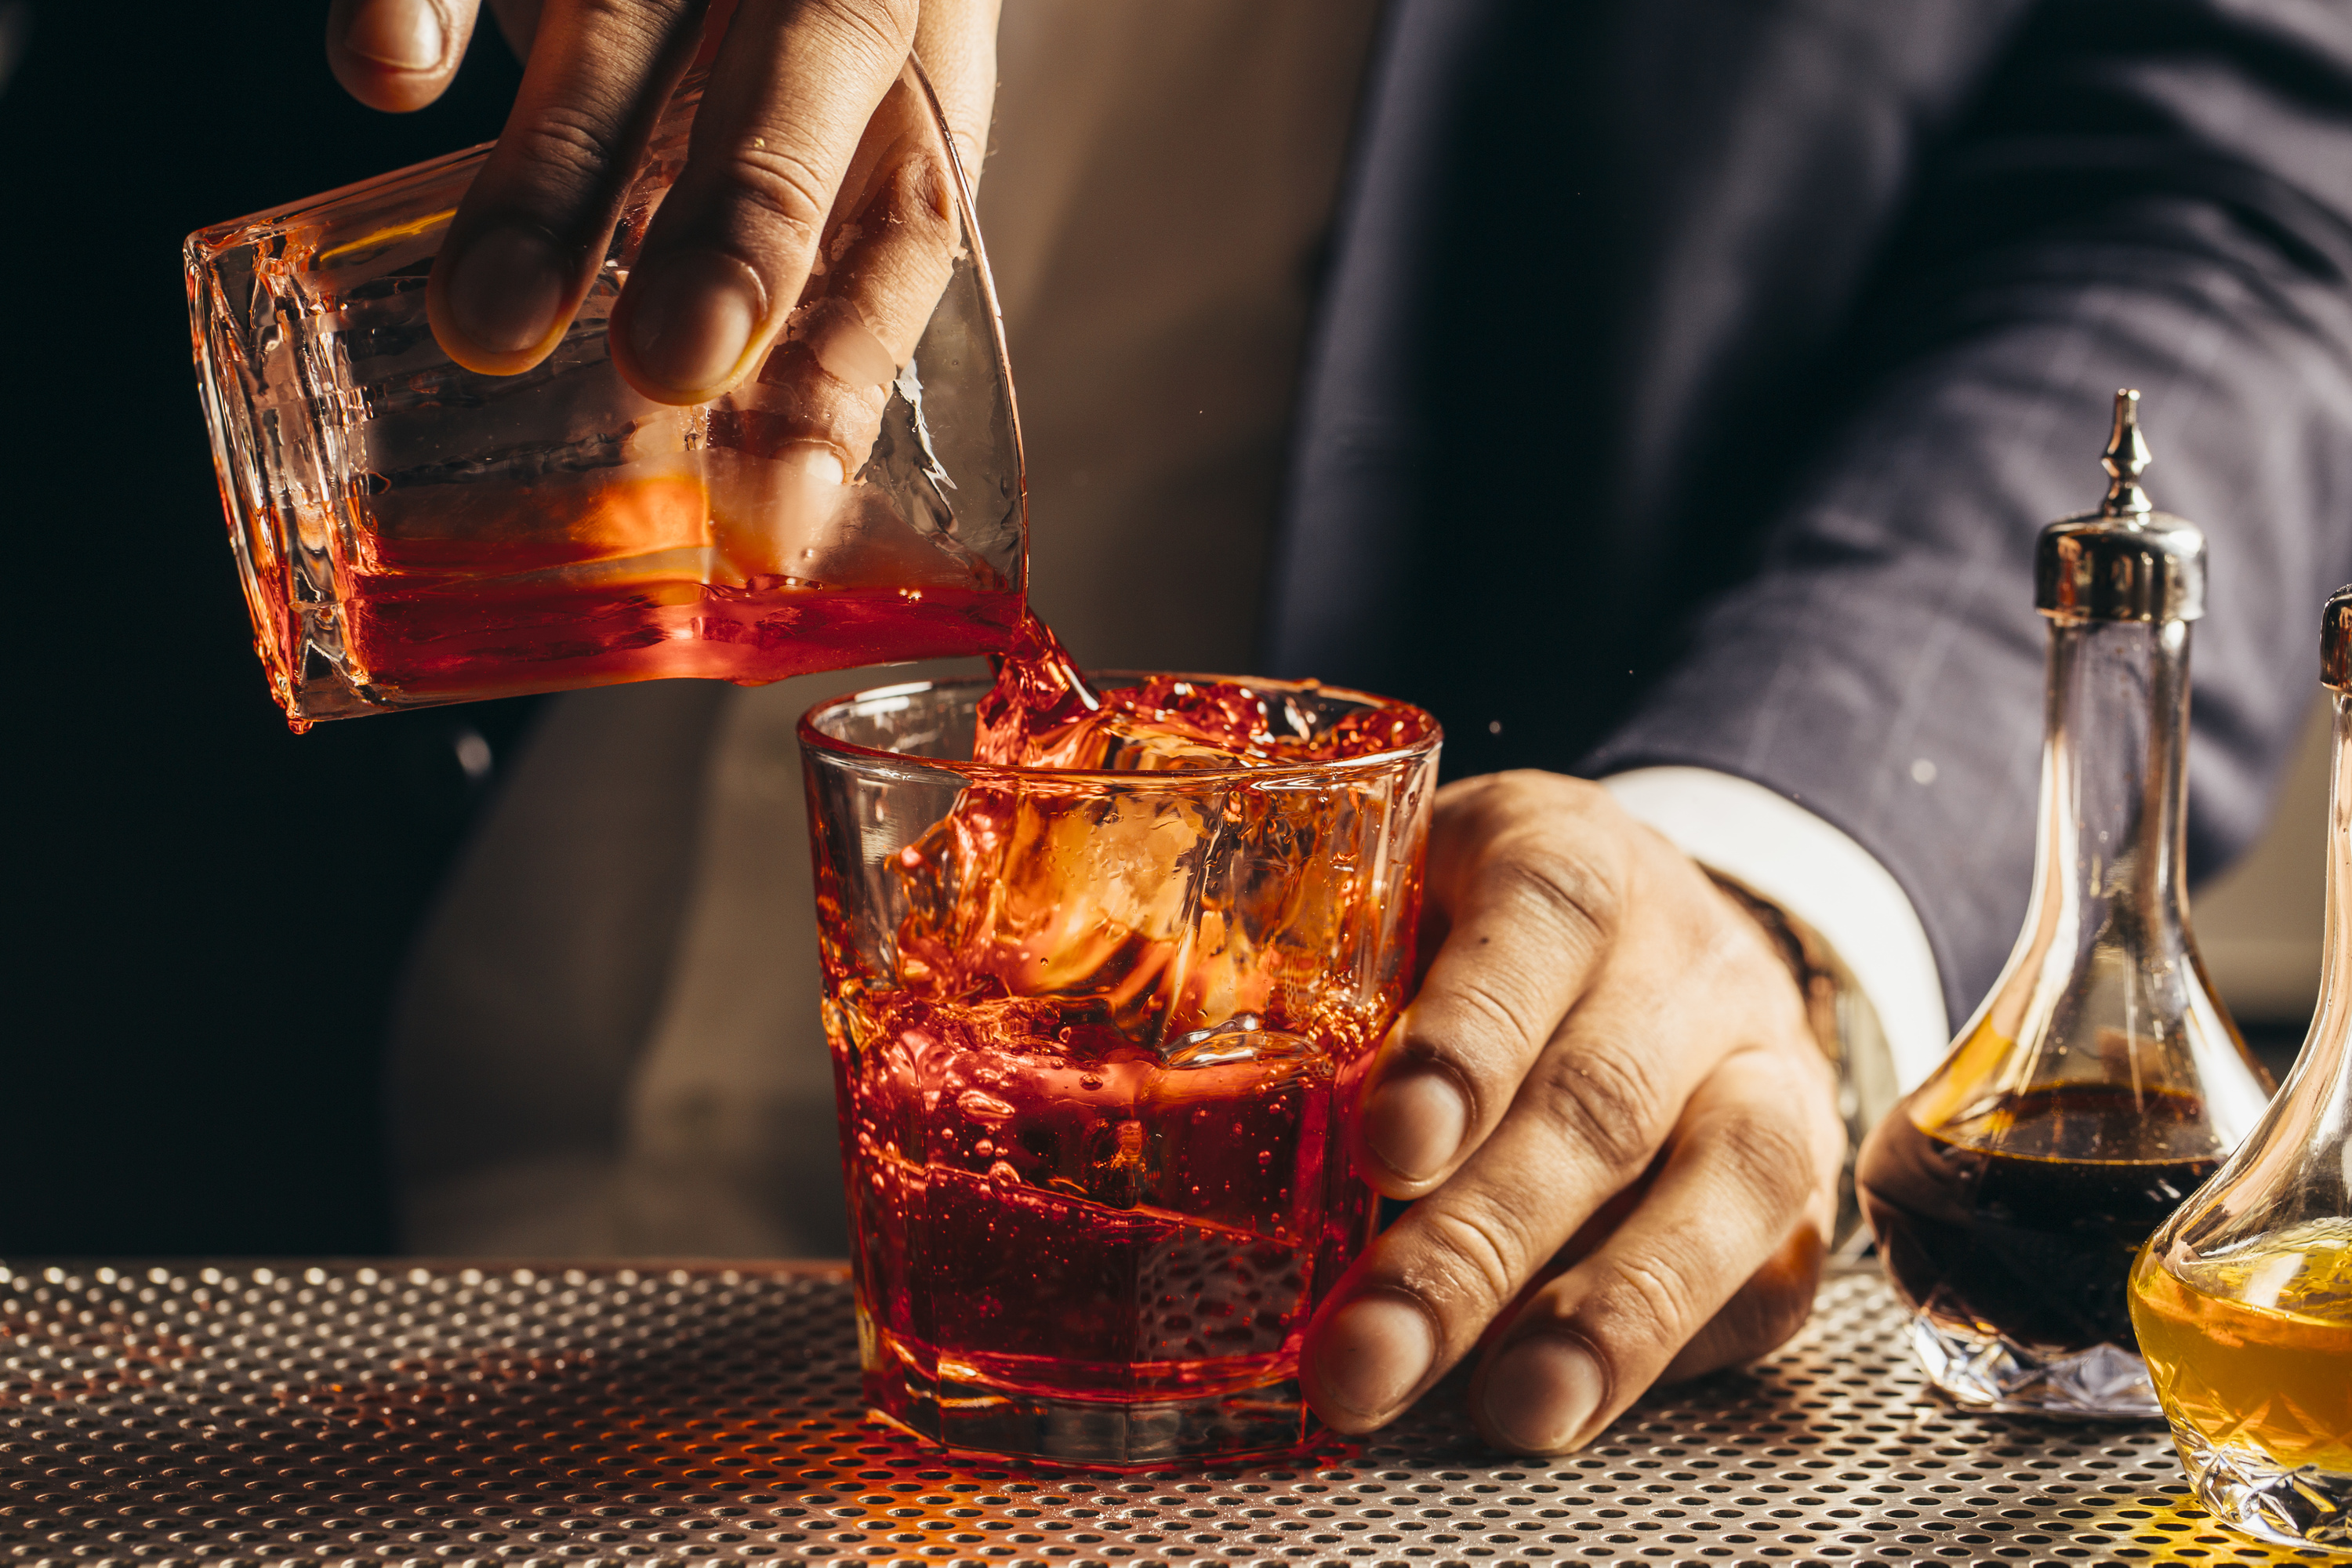 A search for the best Negroni in Chicago